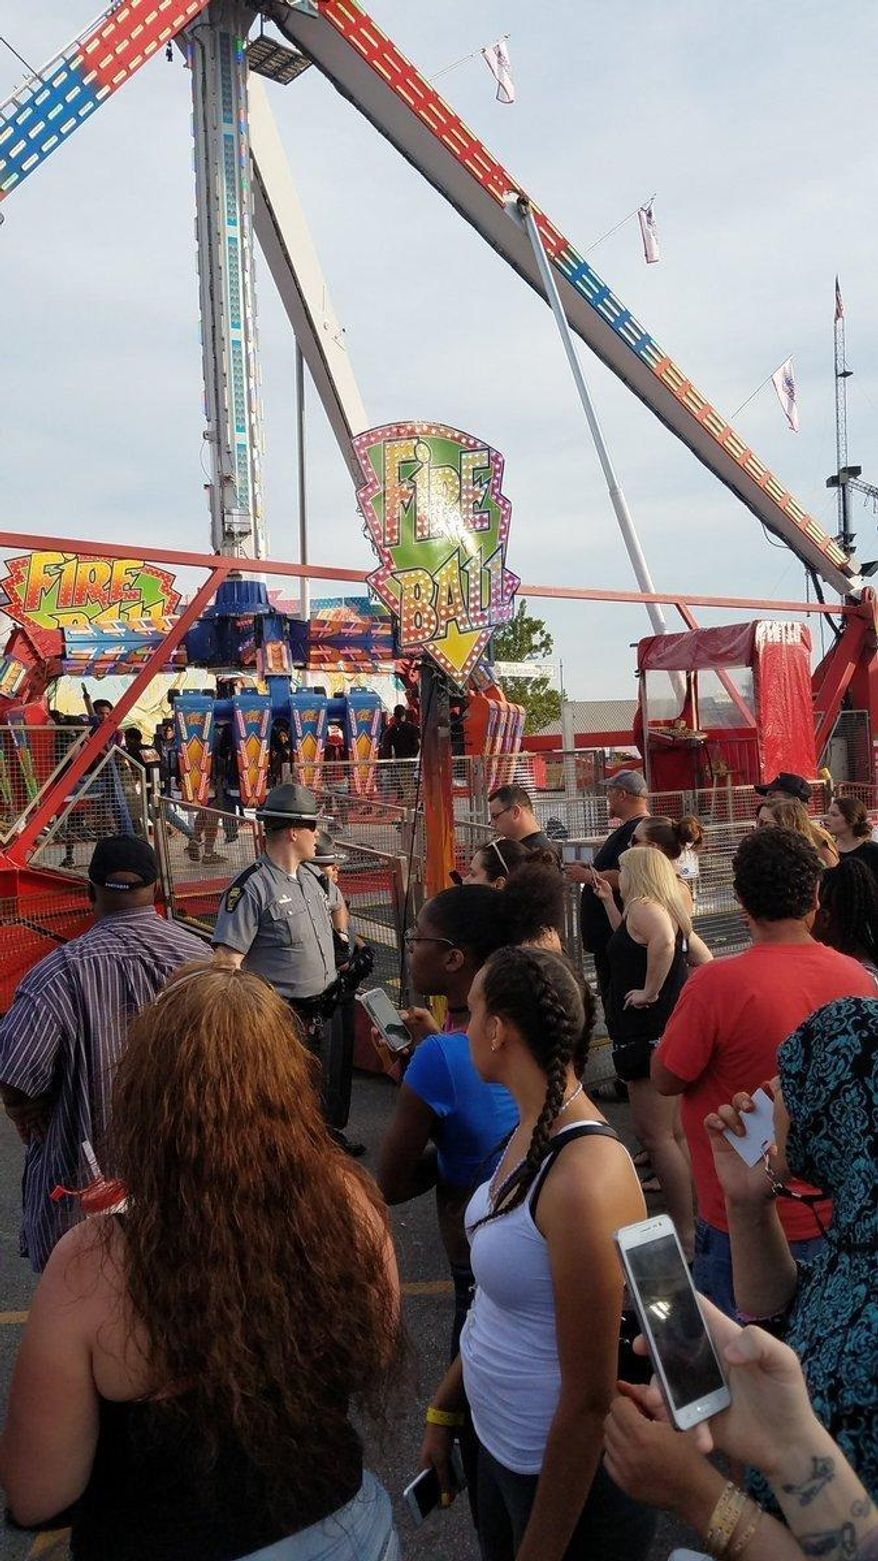 People watch as authorities respond near the Fire Ball amusement ride after the ride malfunctioned injuring several at the Ohio State Fair, Wednesday, July 26, 2017, in Columbus, Ohio. Some of the victims were thrown from the ride when it malfunctioned Wednesday night, said Columbus Fire Battalion Chief Steve Martin. (Justin Eckard via AP)